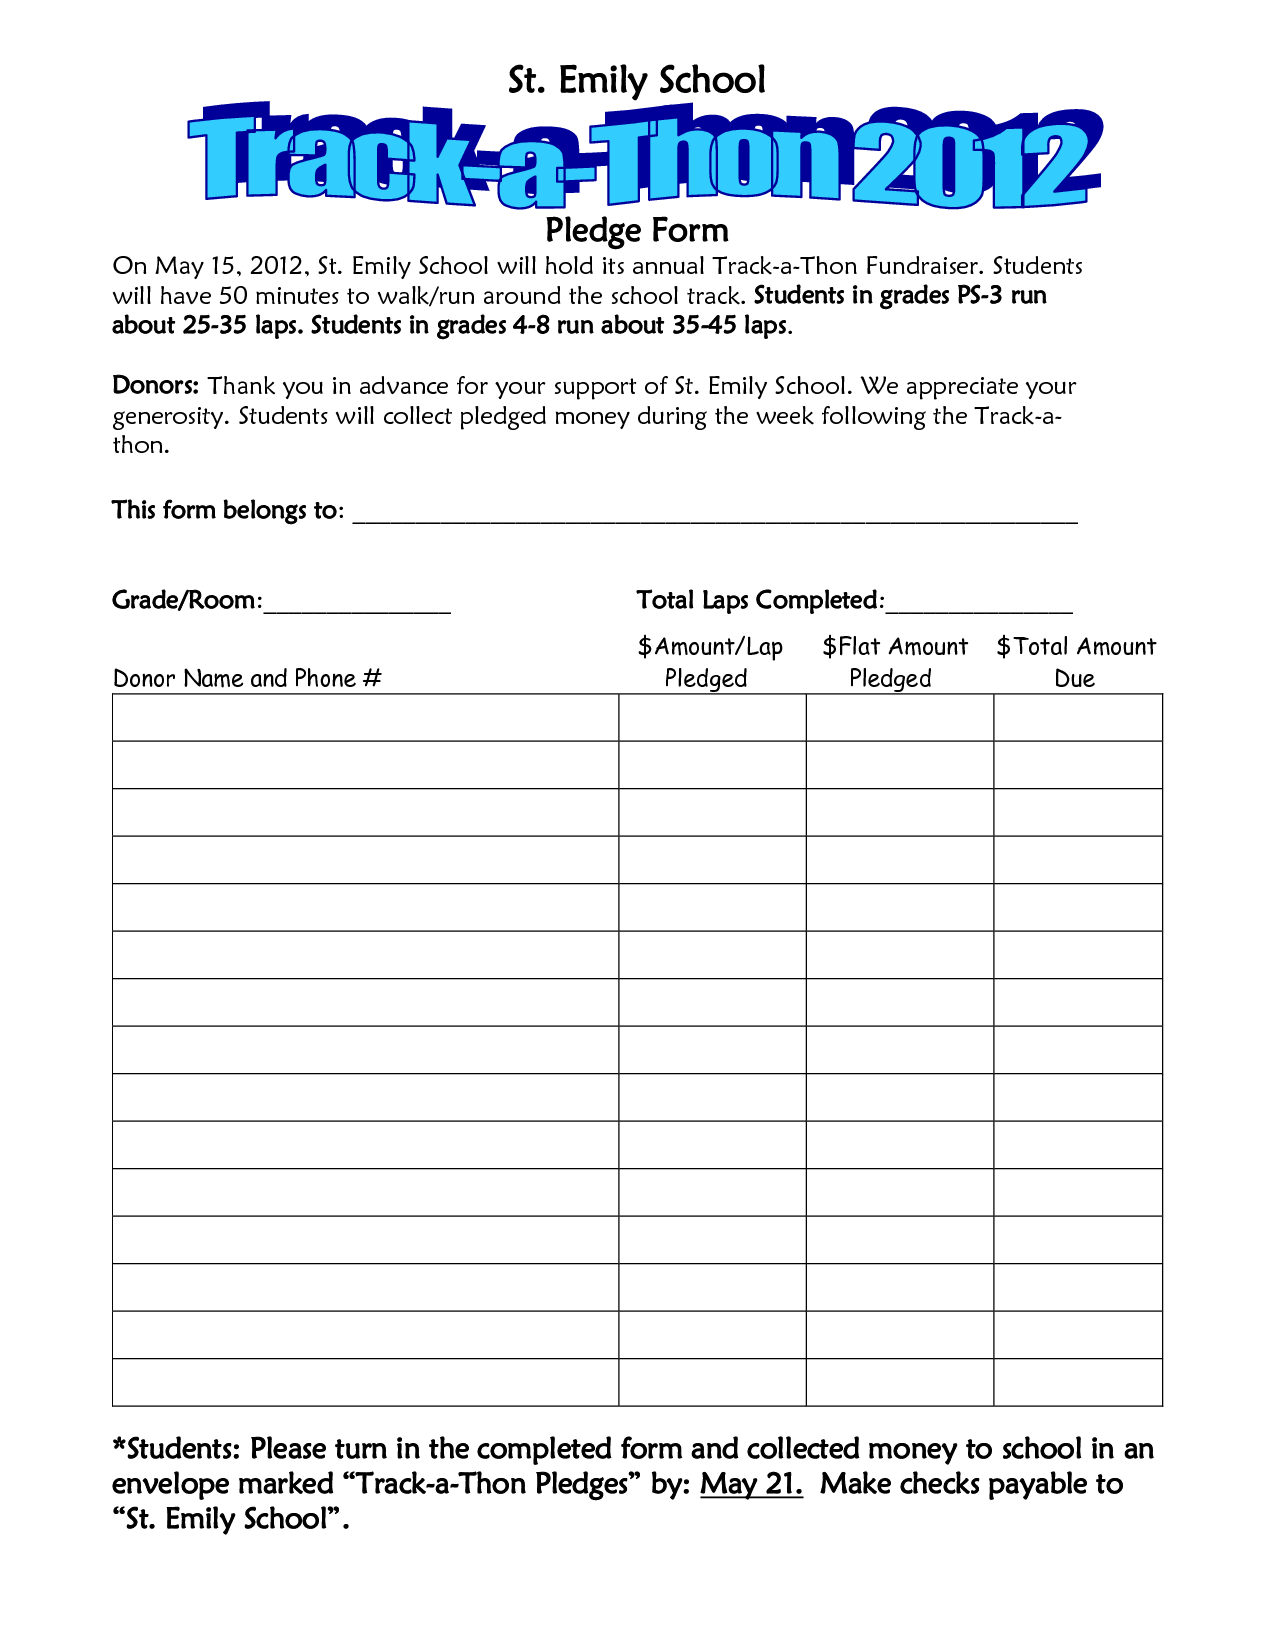 Walkathon Pledge Form Template Invitation Templates Designsearch Results For Walkathon Pledge Form Template In School Fundraisers Read A Thon Fundraising